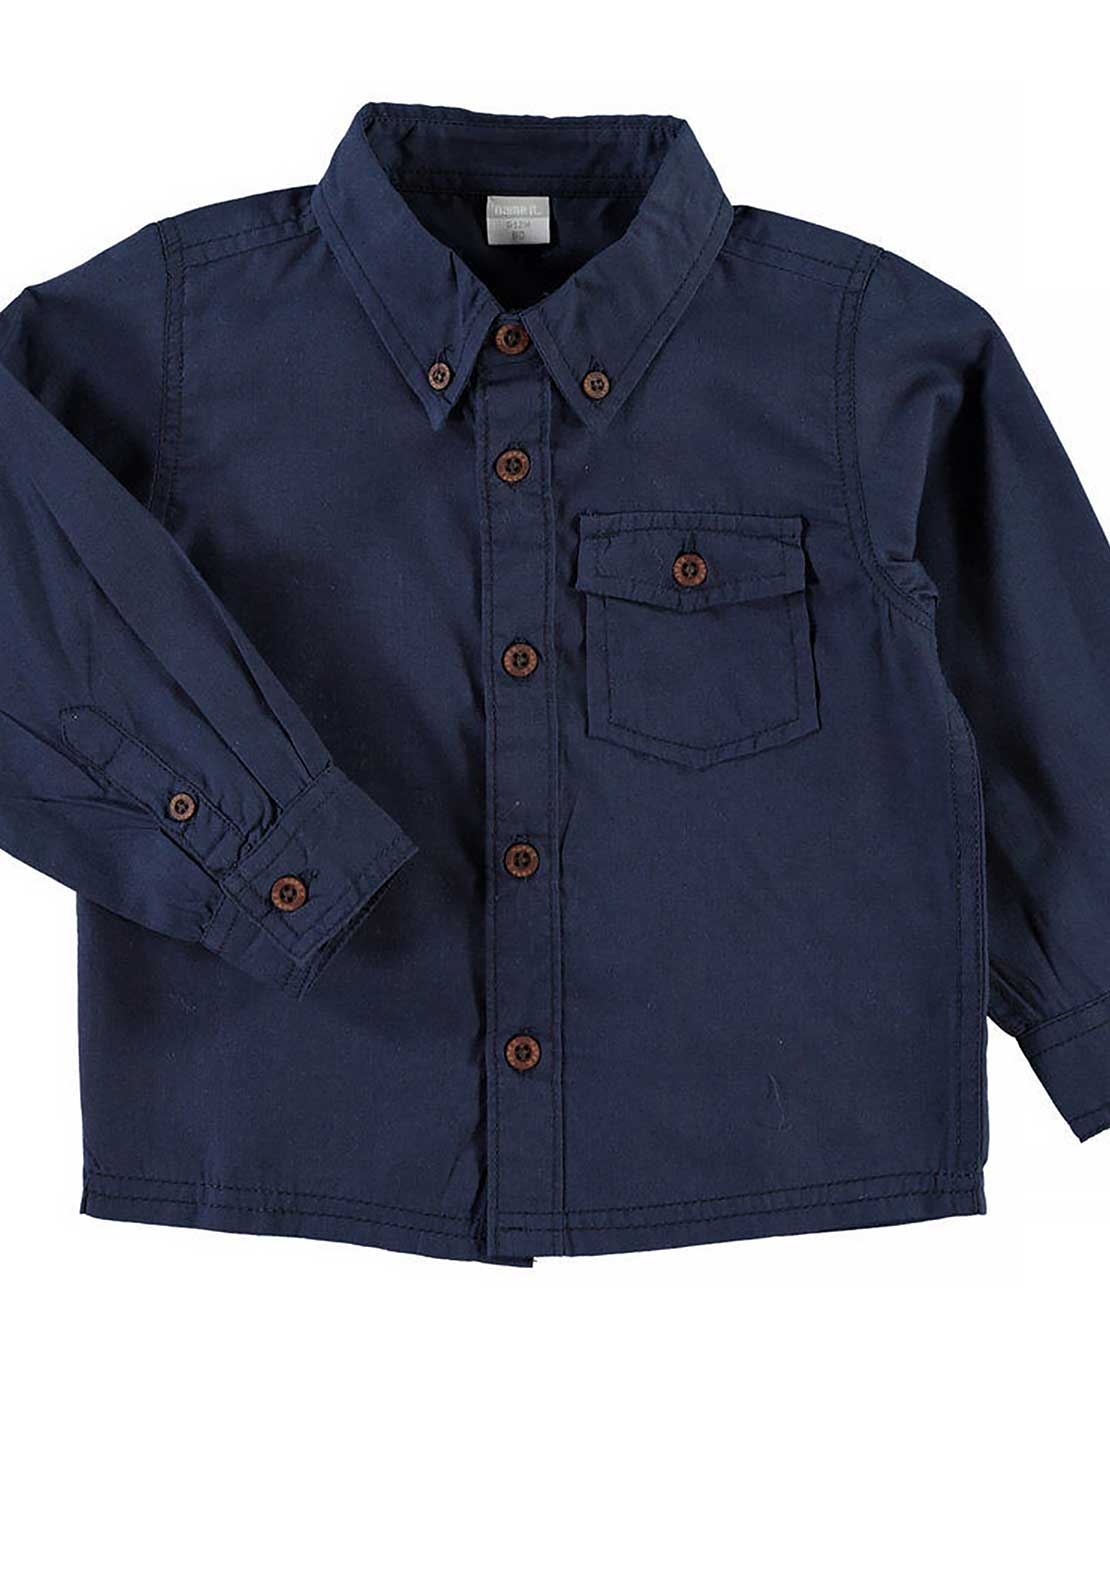 Name It Mini Boys Cenzo Plain Shirt, Dress Blues